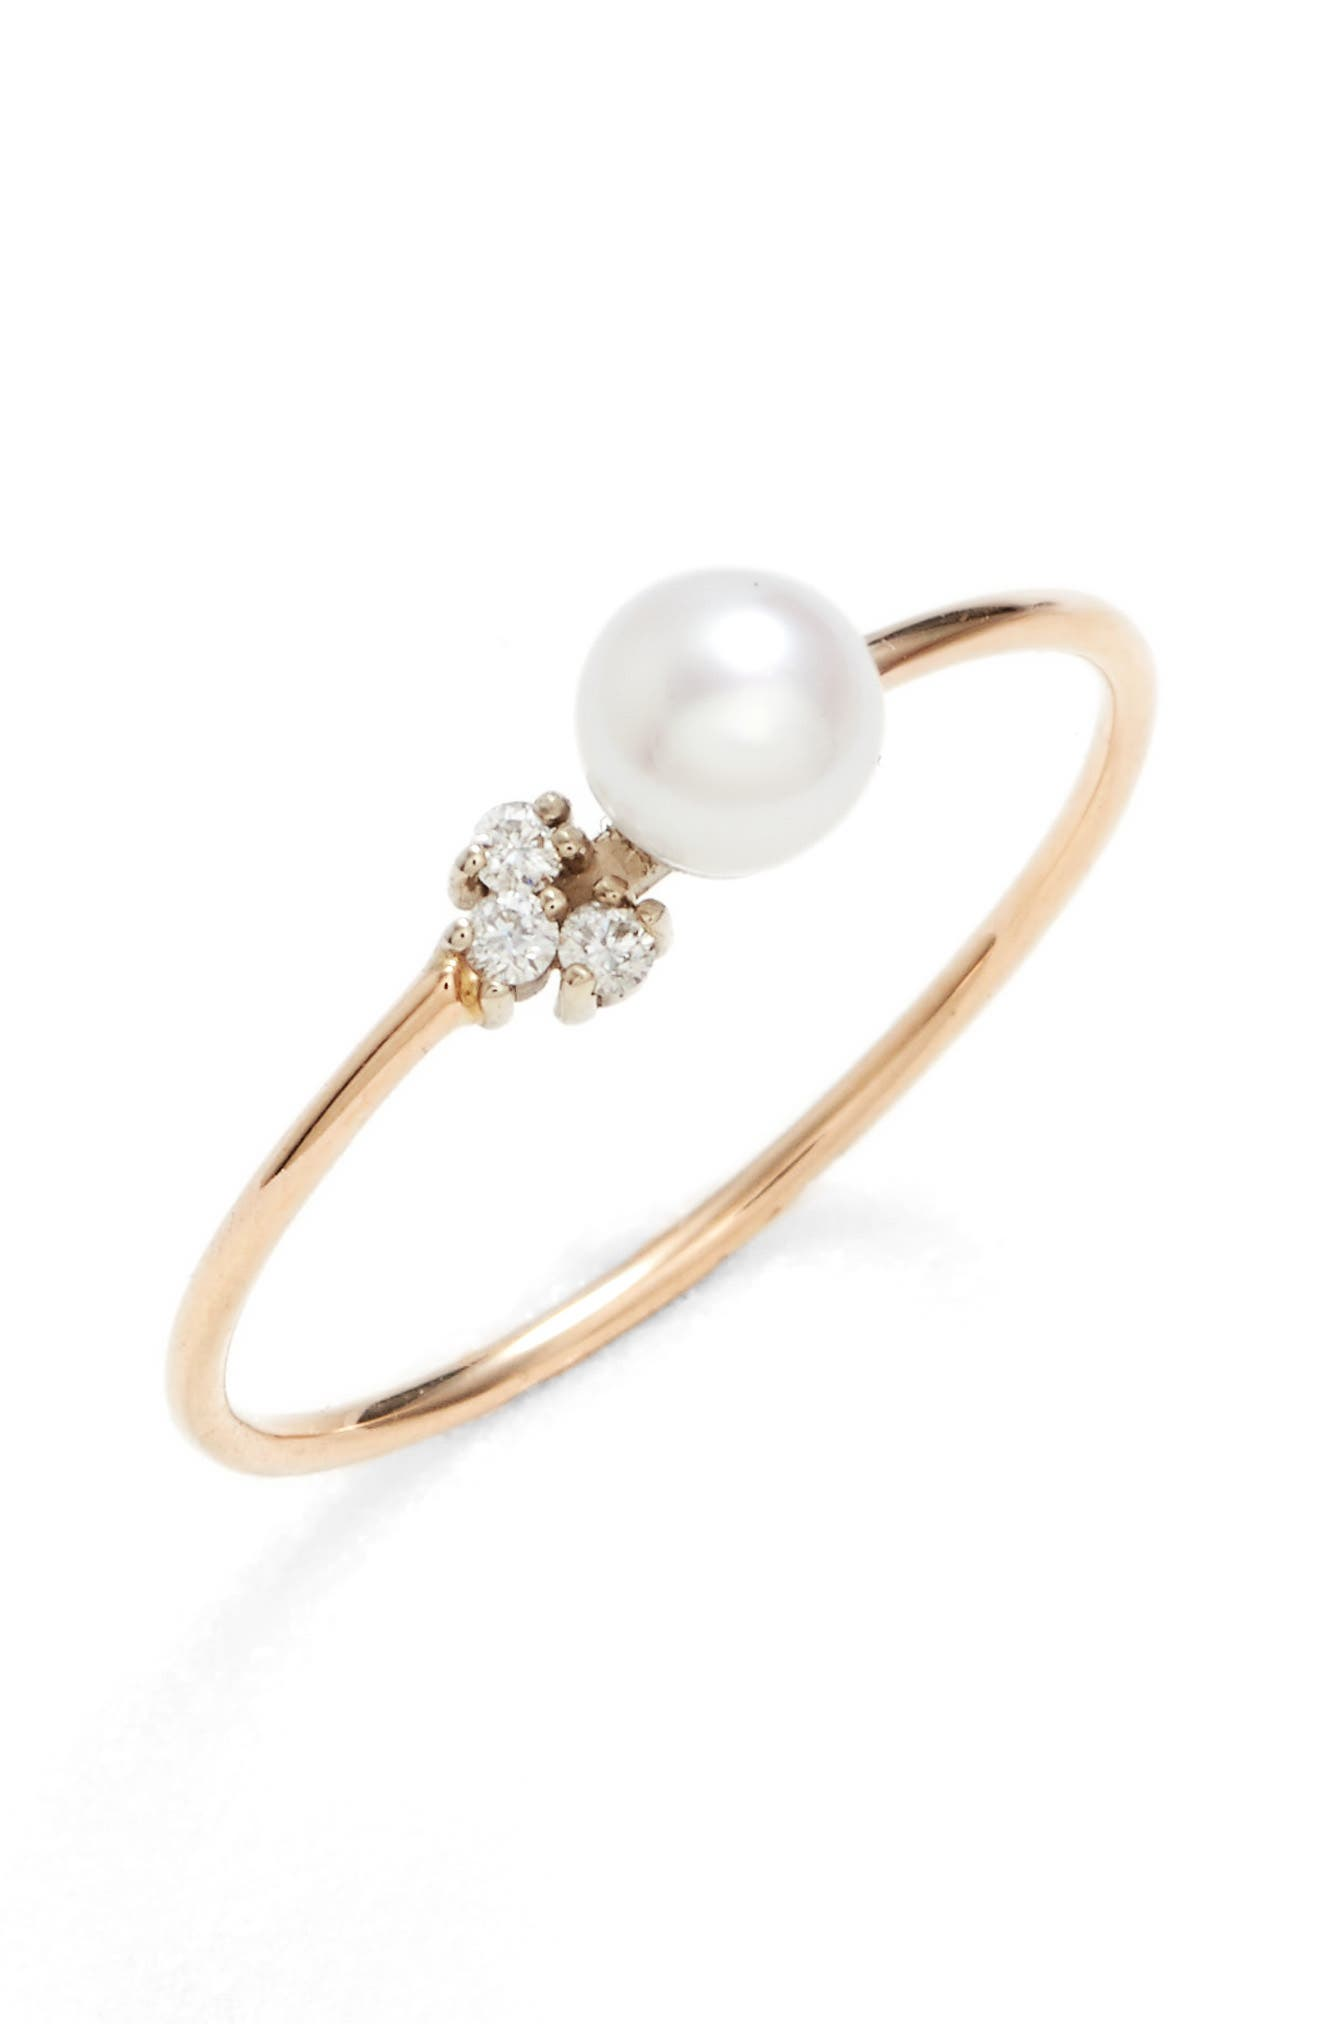 Pearl & Diamond Ring,                         Main,                         color, YELLOW GOLD/ WHITE PEARL